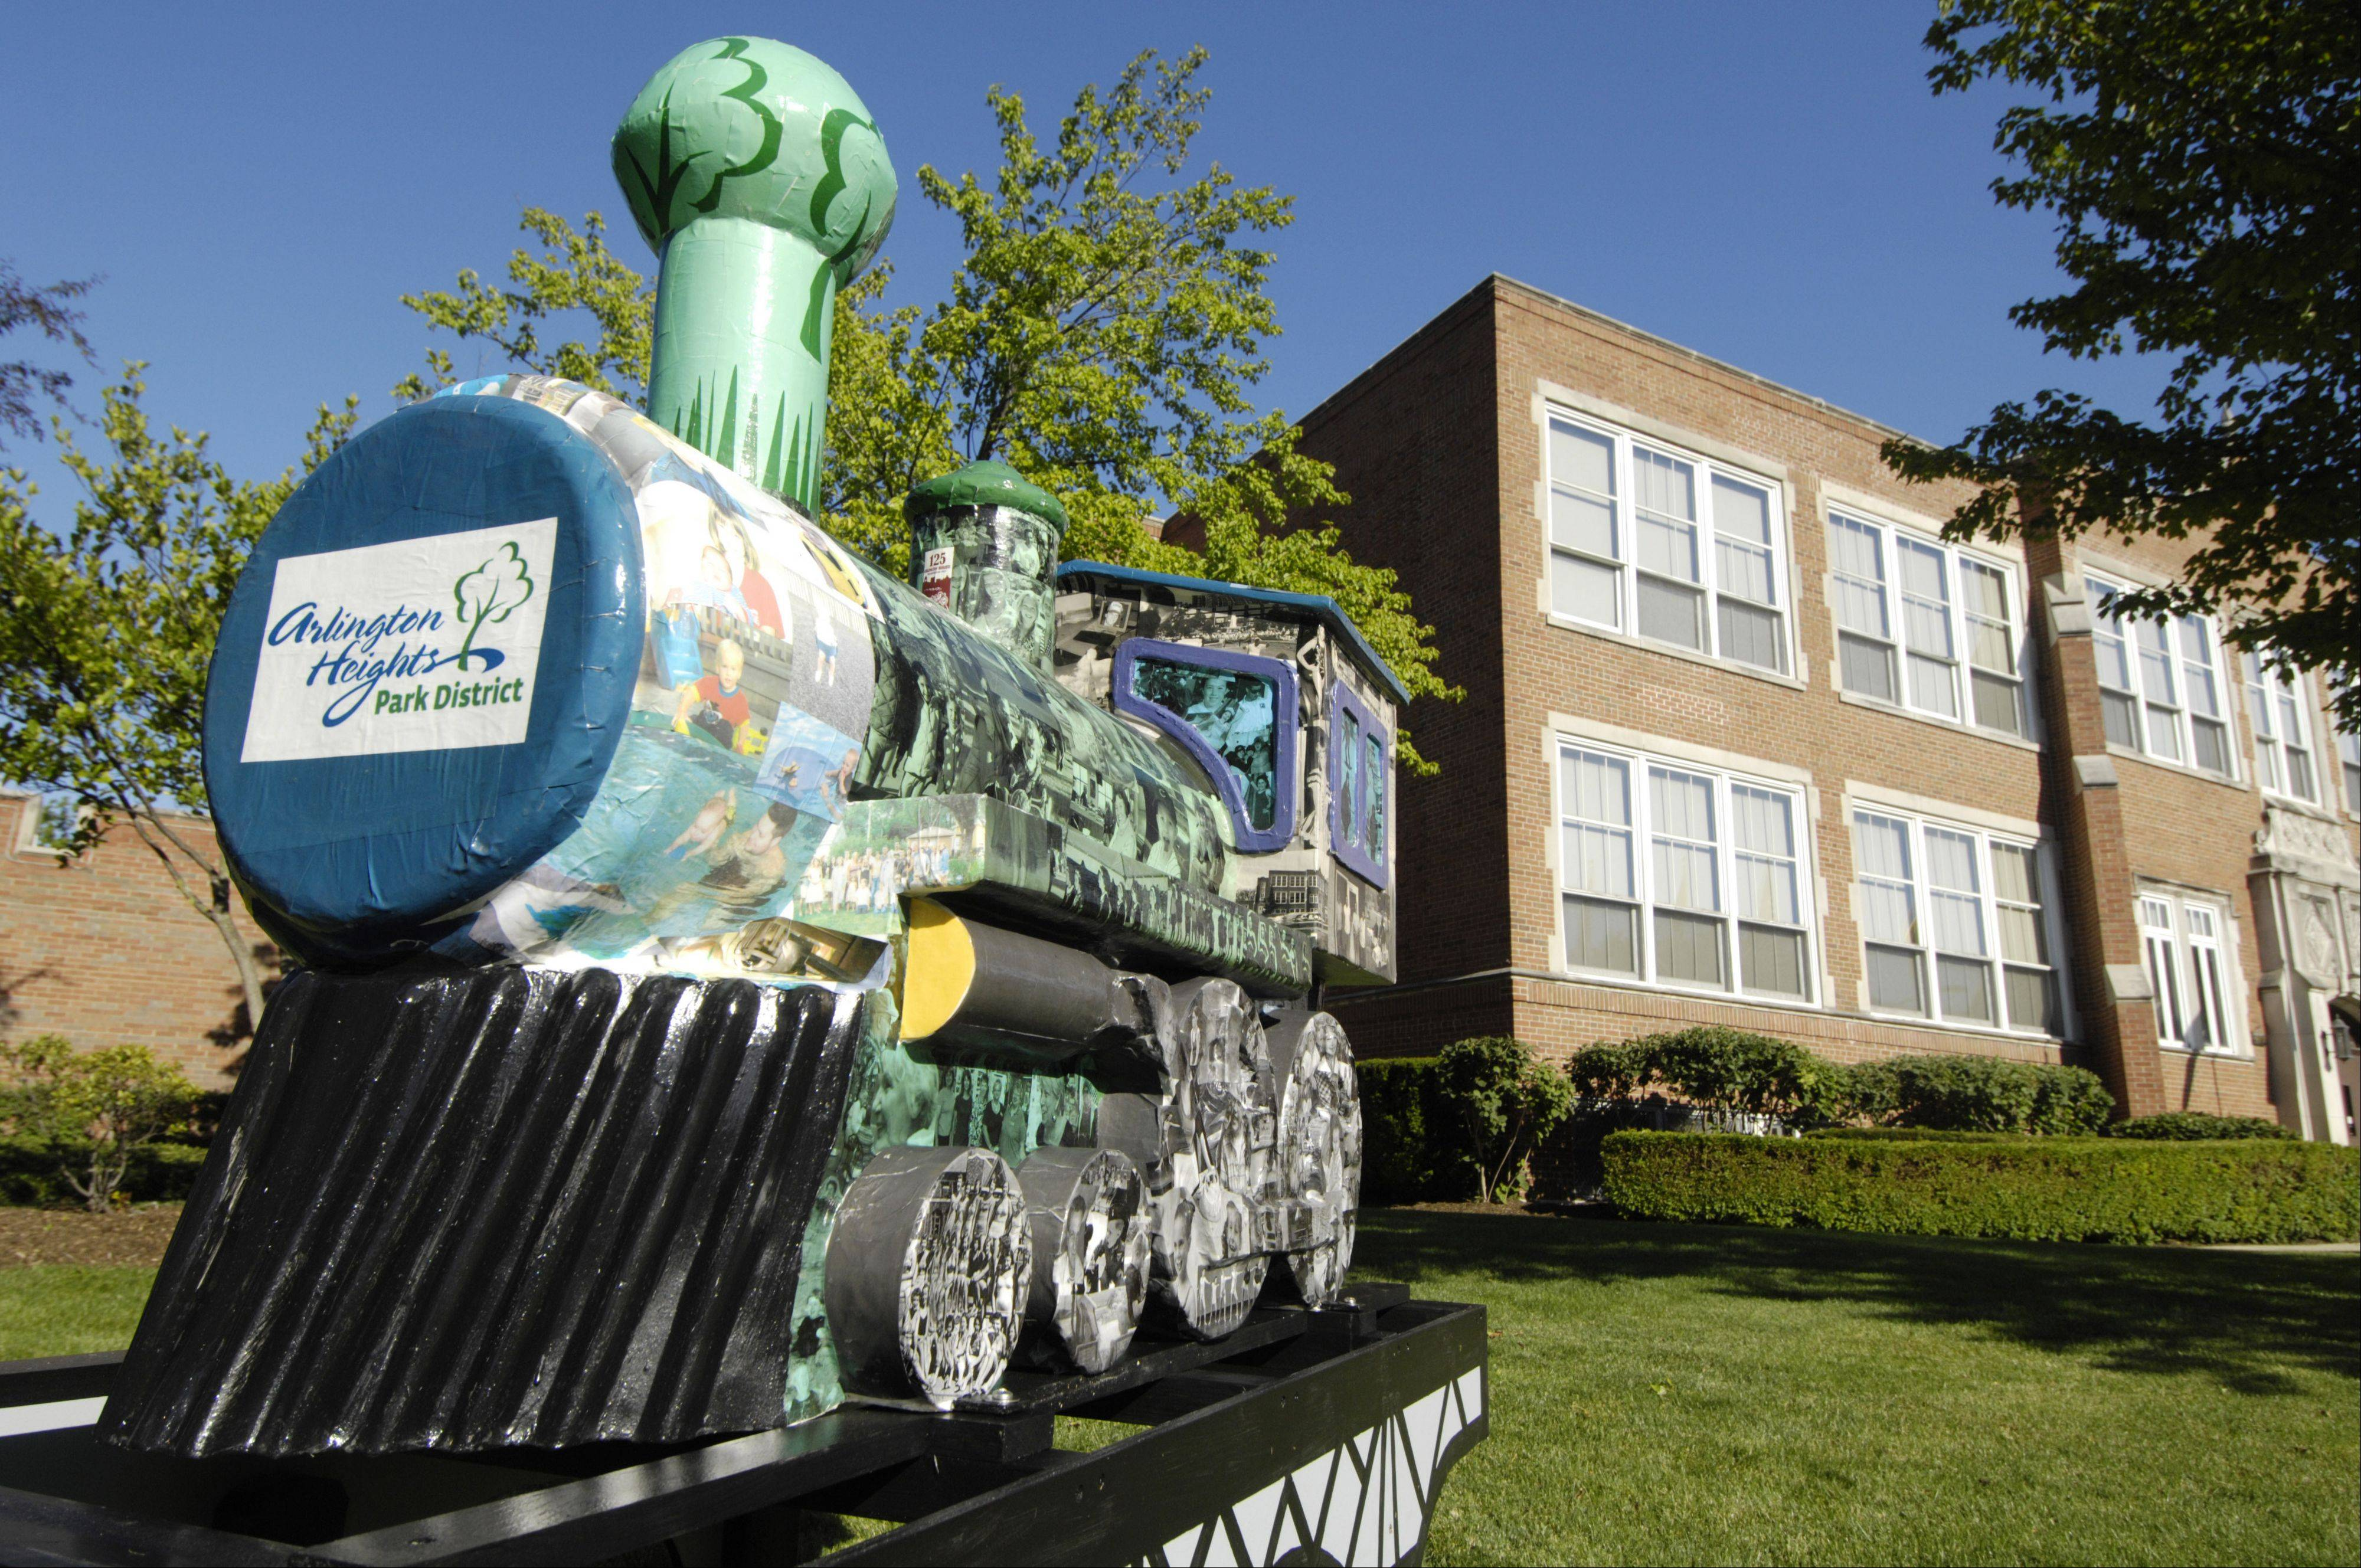 P. D. the Train sits in front of the Arlington Heights Park District Administration Center, 410 N. Arlington Heights Road, ready for Friday's Picnic in the Park in the adjacent North School Park.